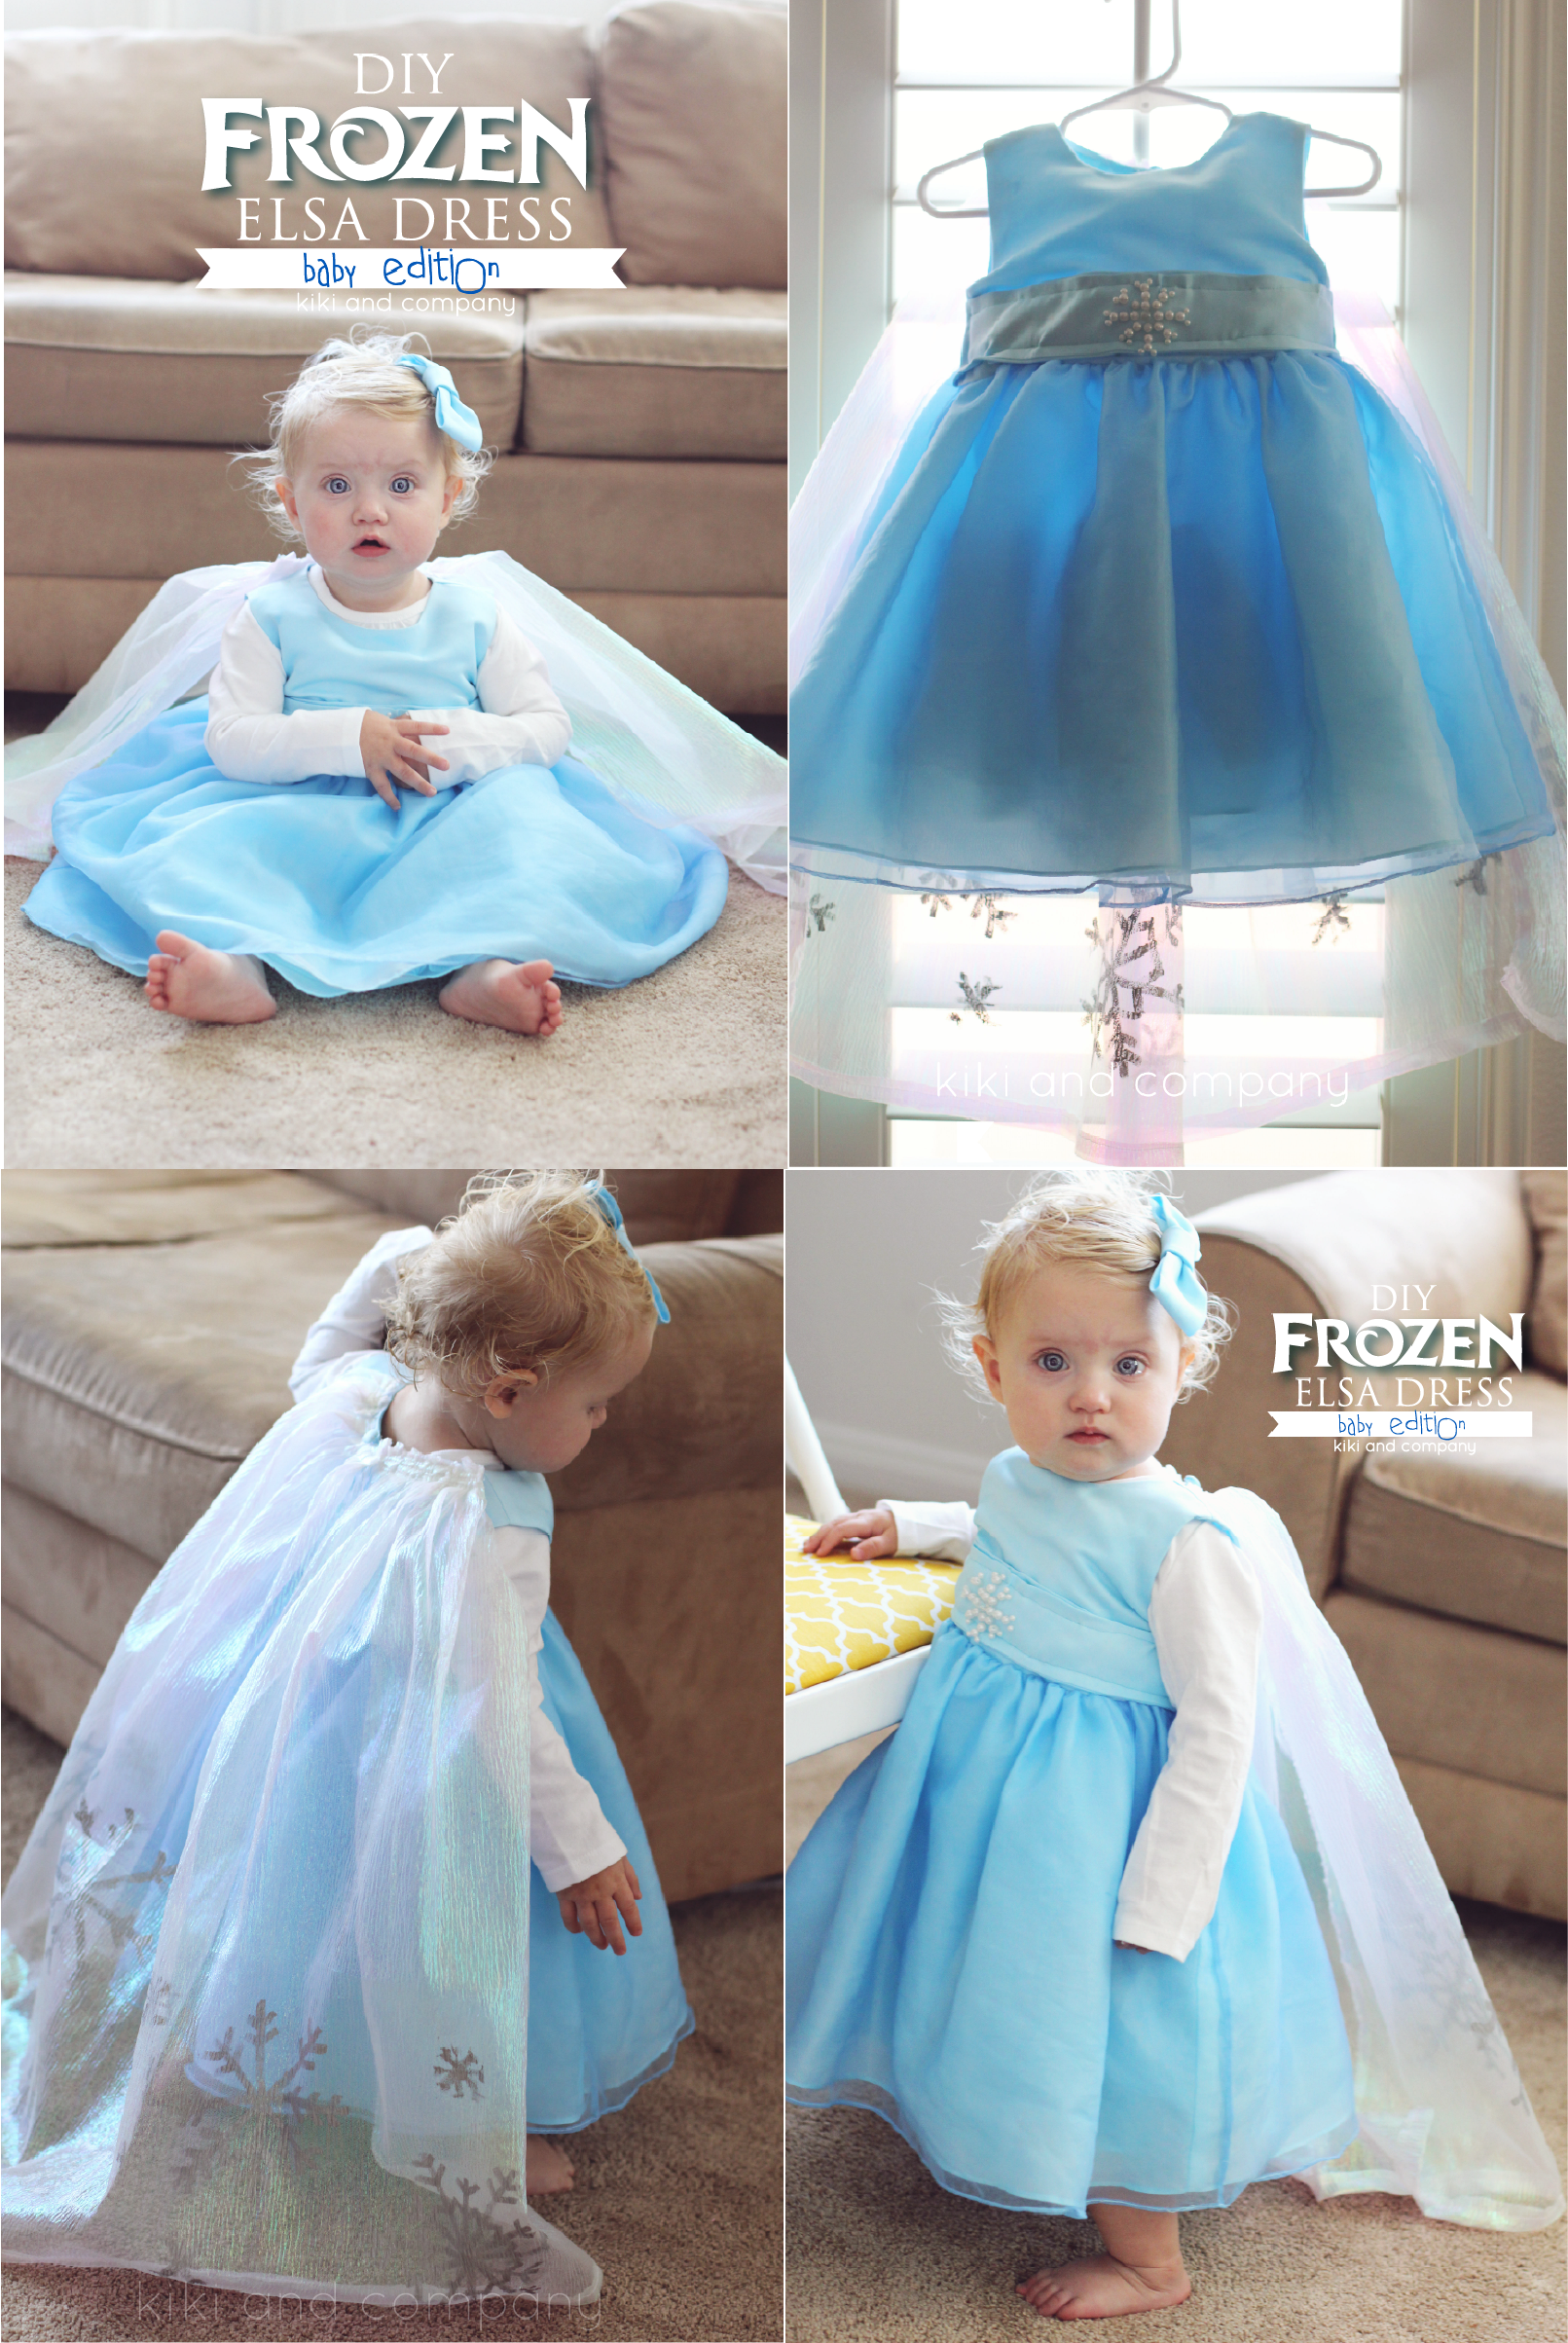 And now itu0027s time for tons more DIY Halloween costume ...  sc 1 st  Kiki Comin & DIY Frozen Elsa Dress BABY Edition free tutorial - Kiki u0026 Company